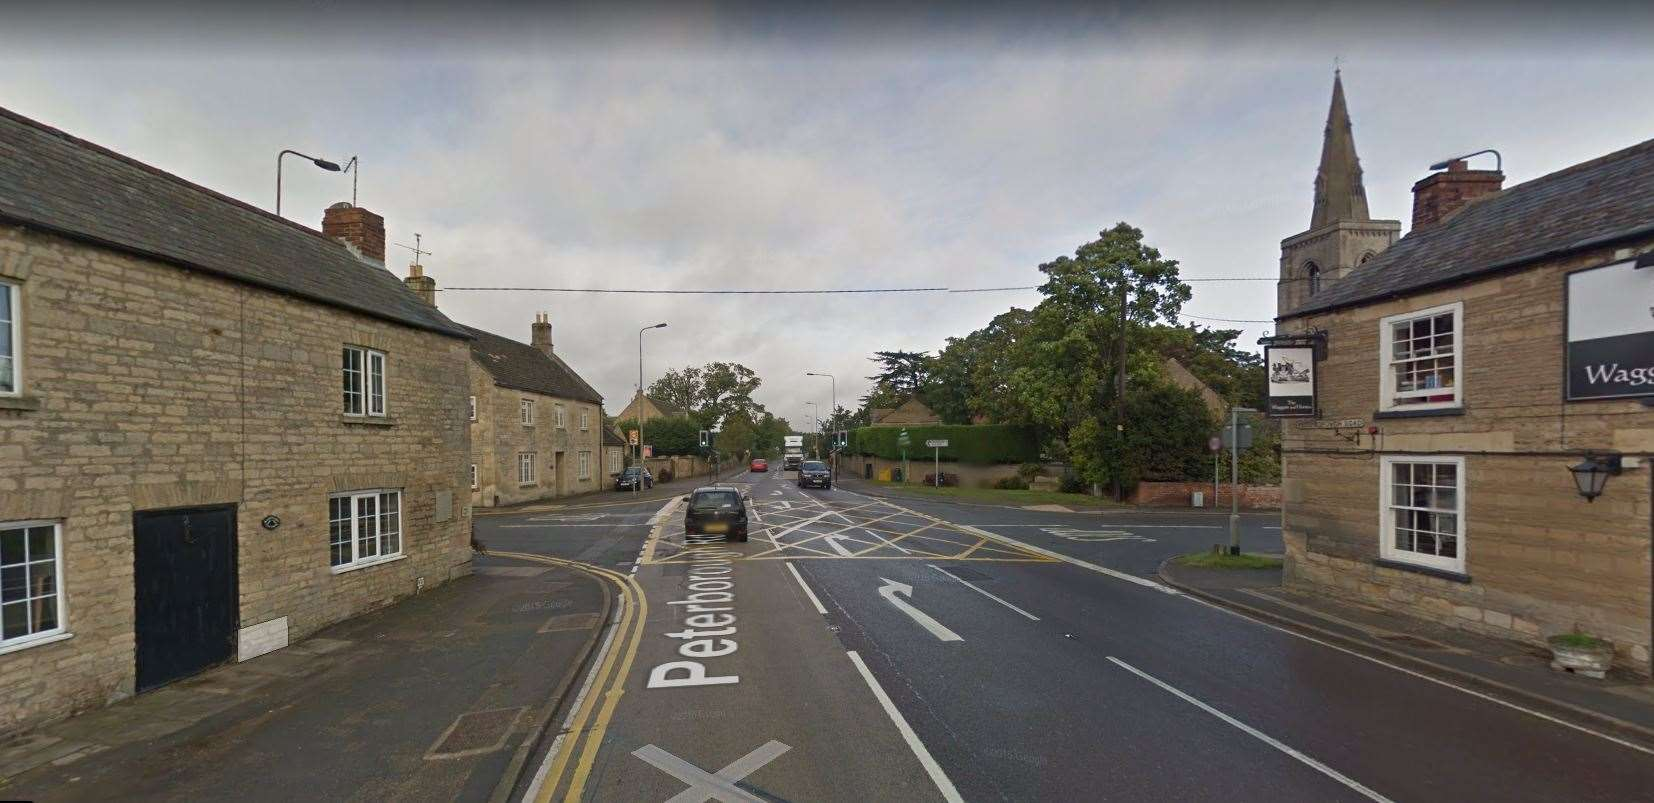 The A15 crossroad in Langtoft. Photo: Google Maps